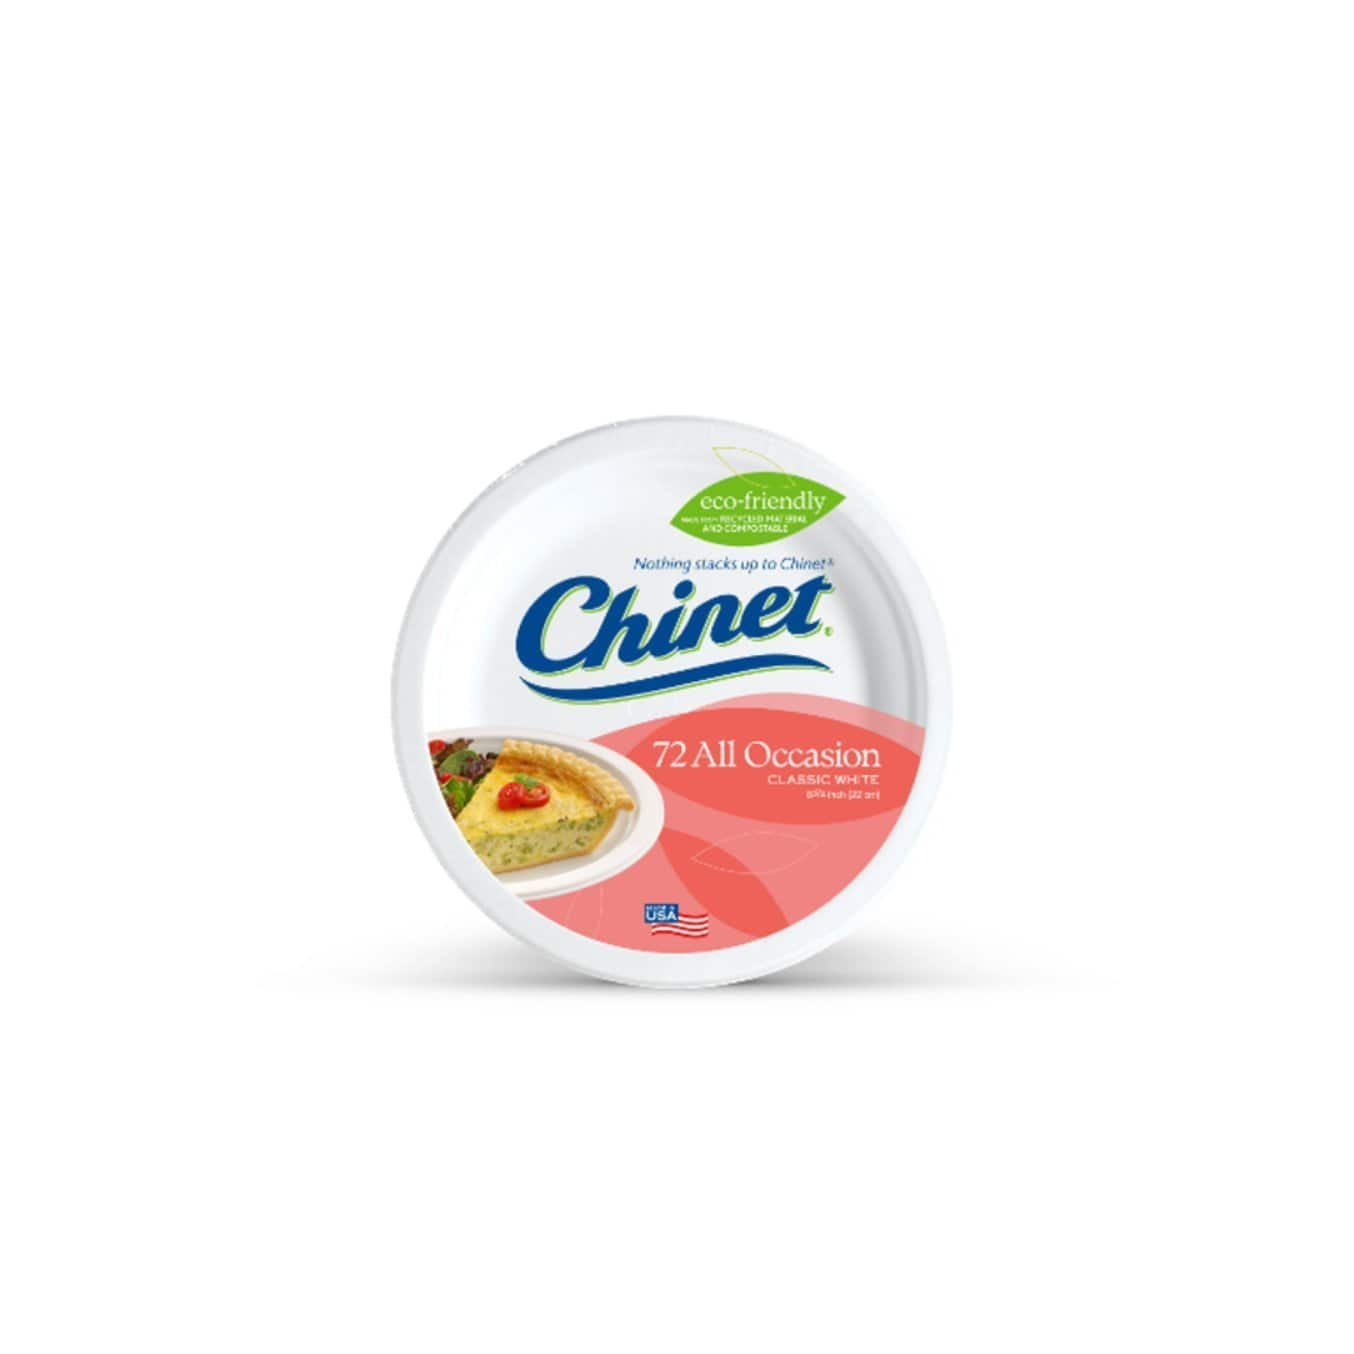 Chinet 72 count plates prime pantry $2.92